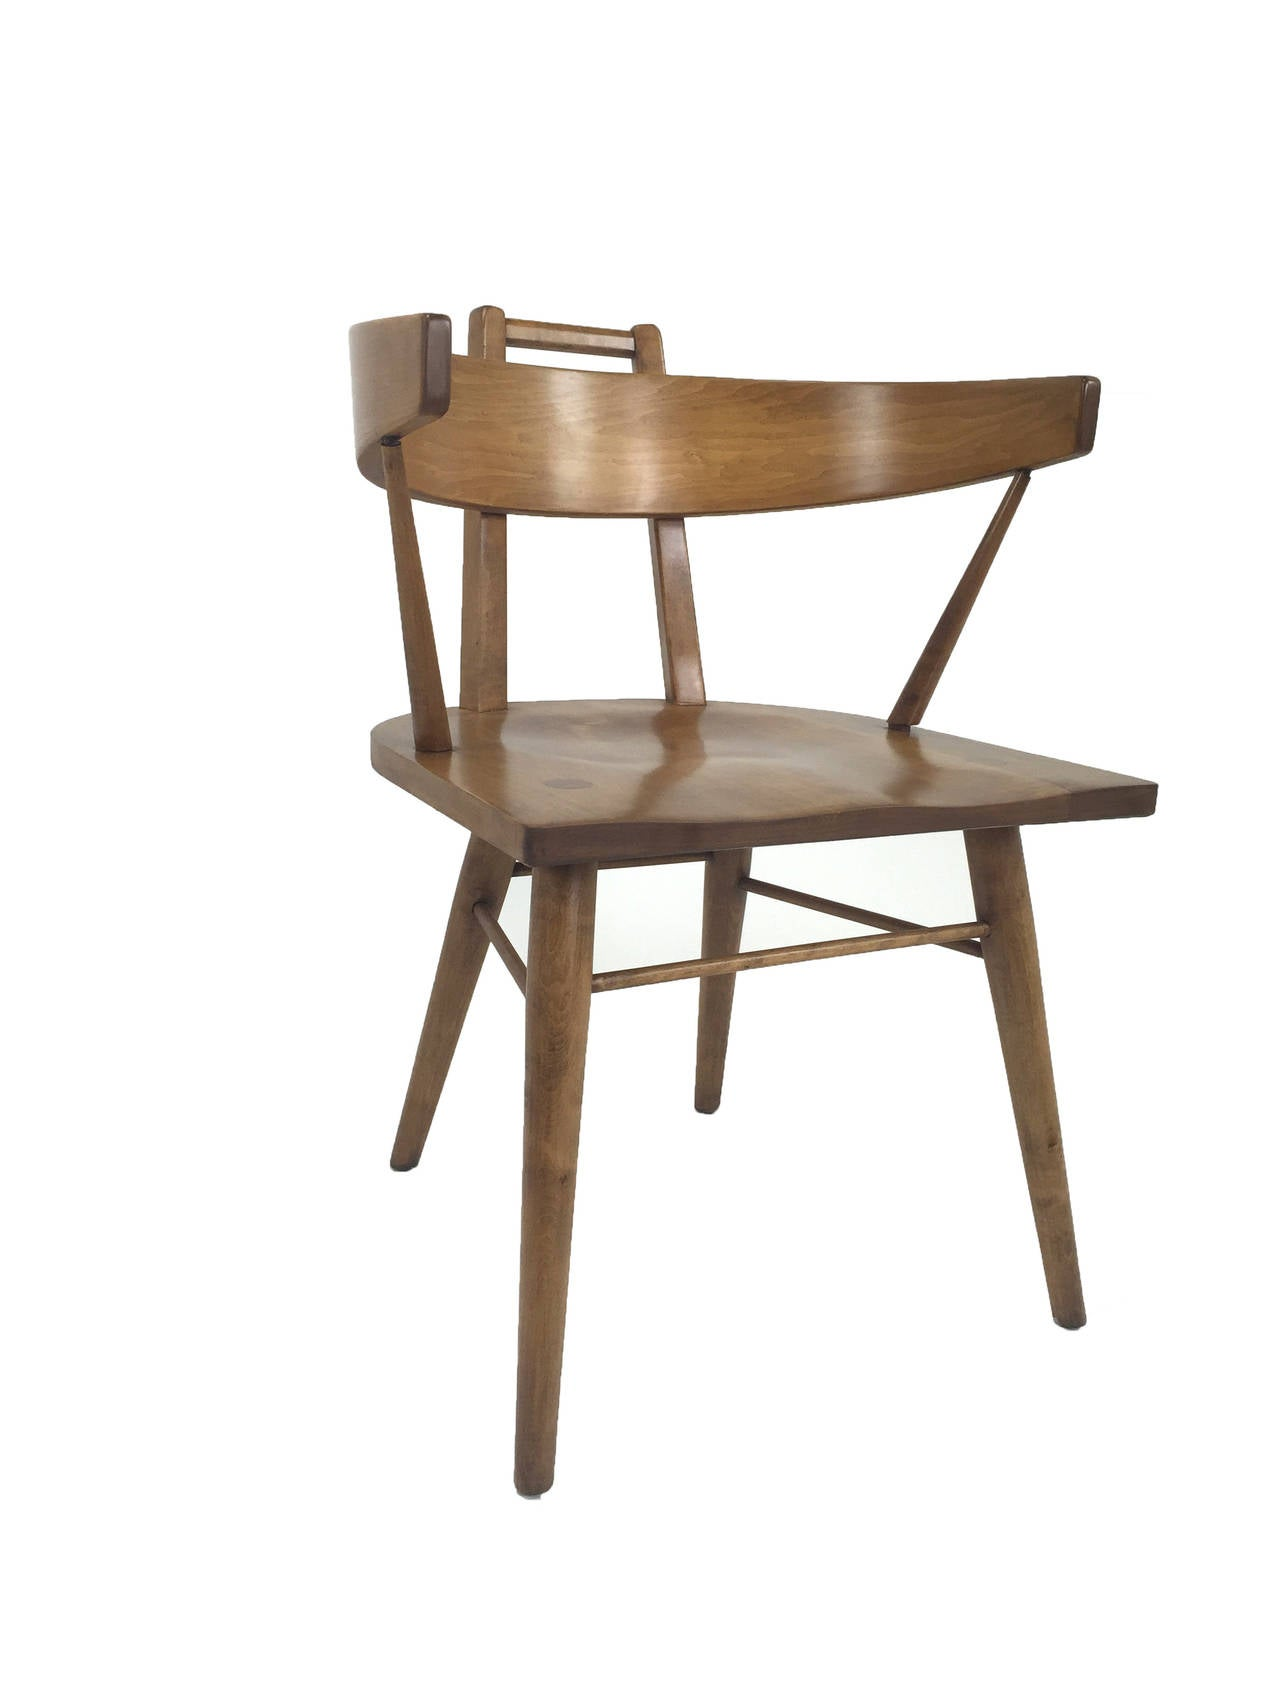 Unusual wing dining chairs by the northwest co at 1stdibs for Furniture northwest